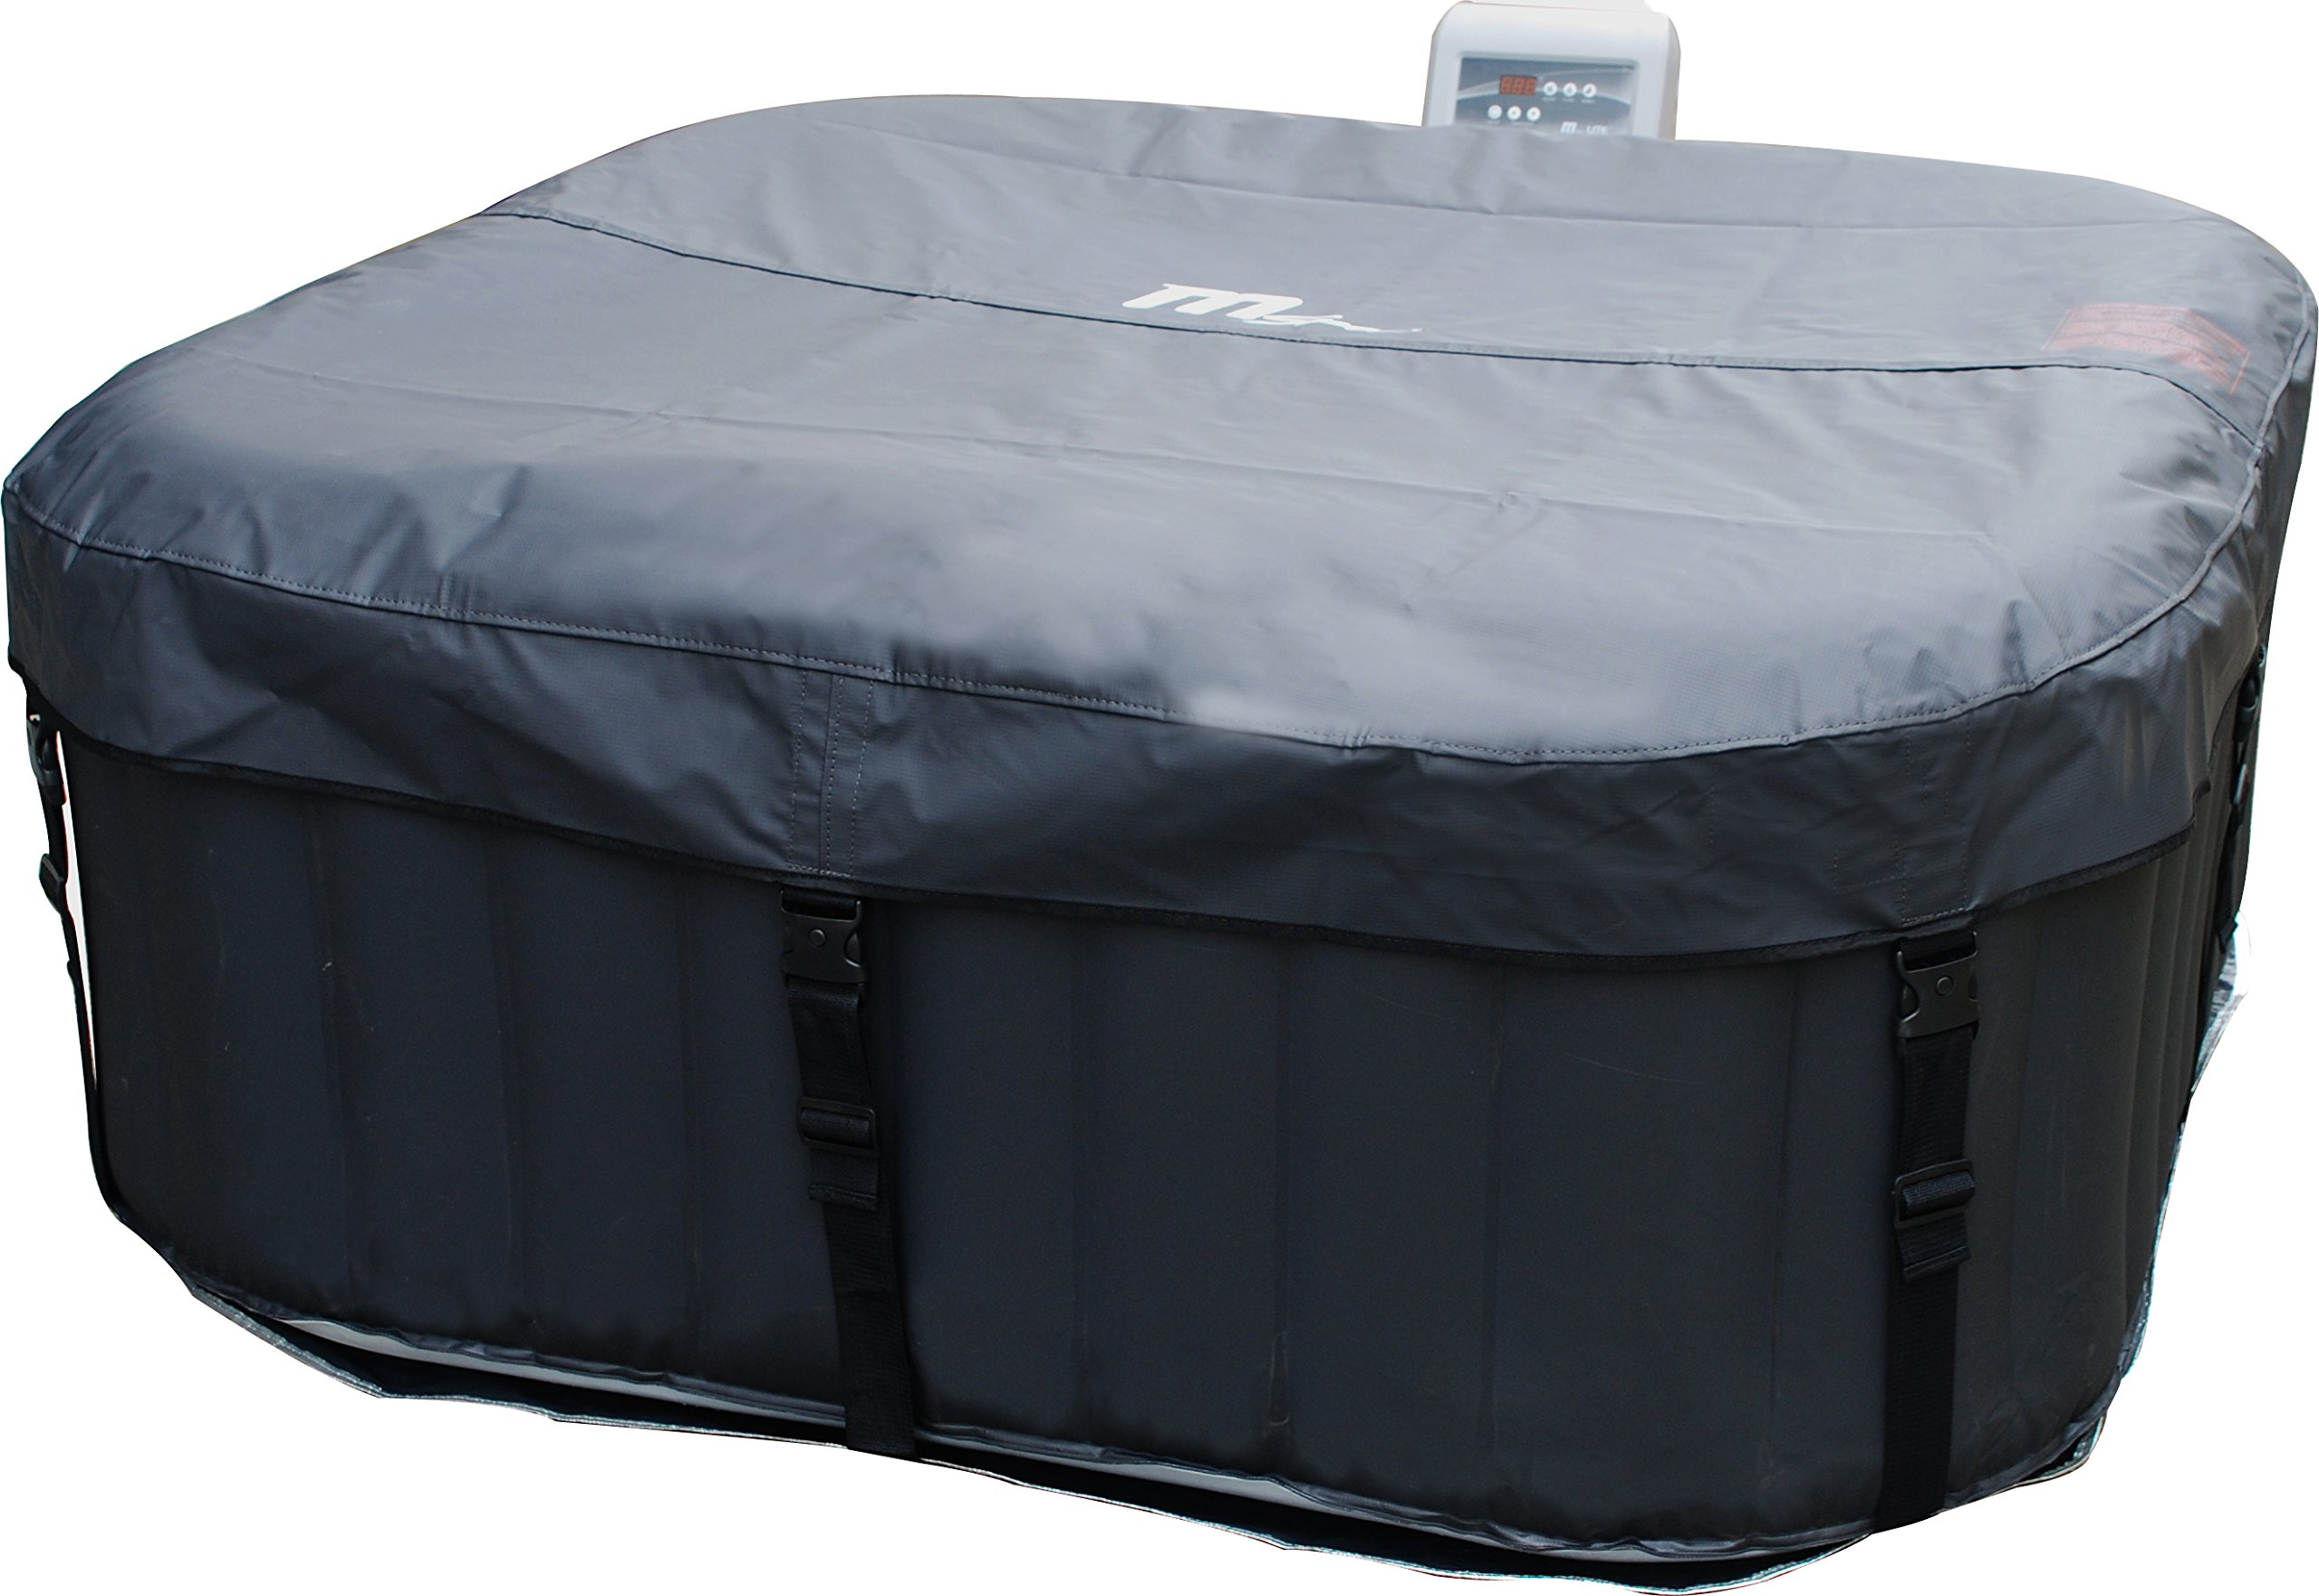 MSPA Lite Alpine Square Relaxation and Hydrotherapy Outdoor Spa M-009LS by M-SPA (Image #3)